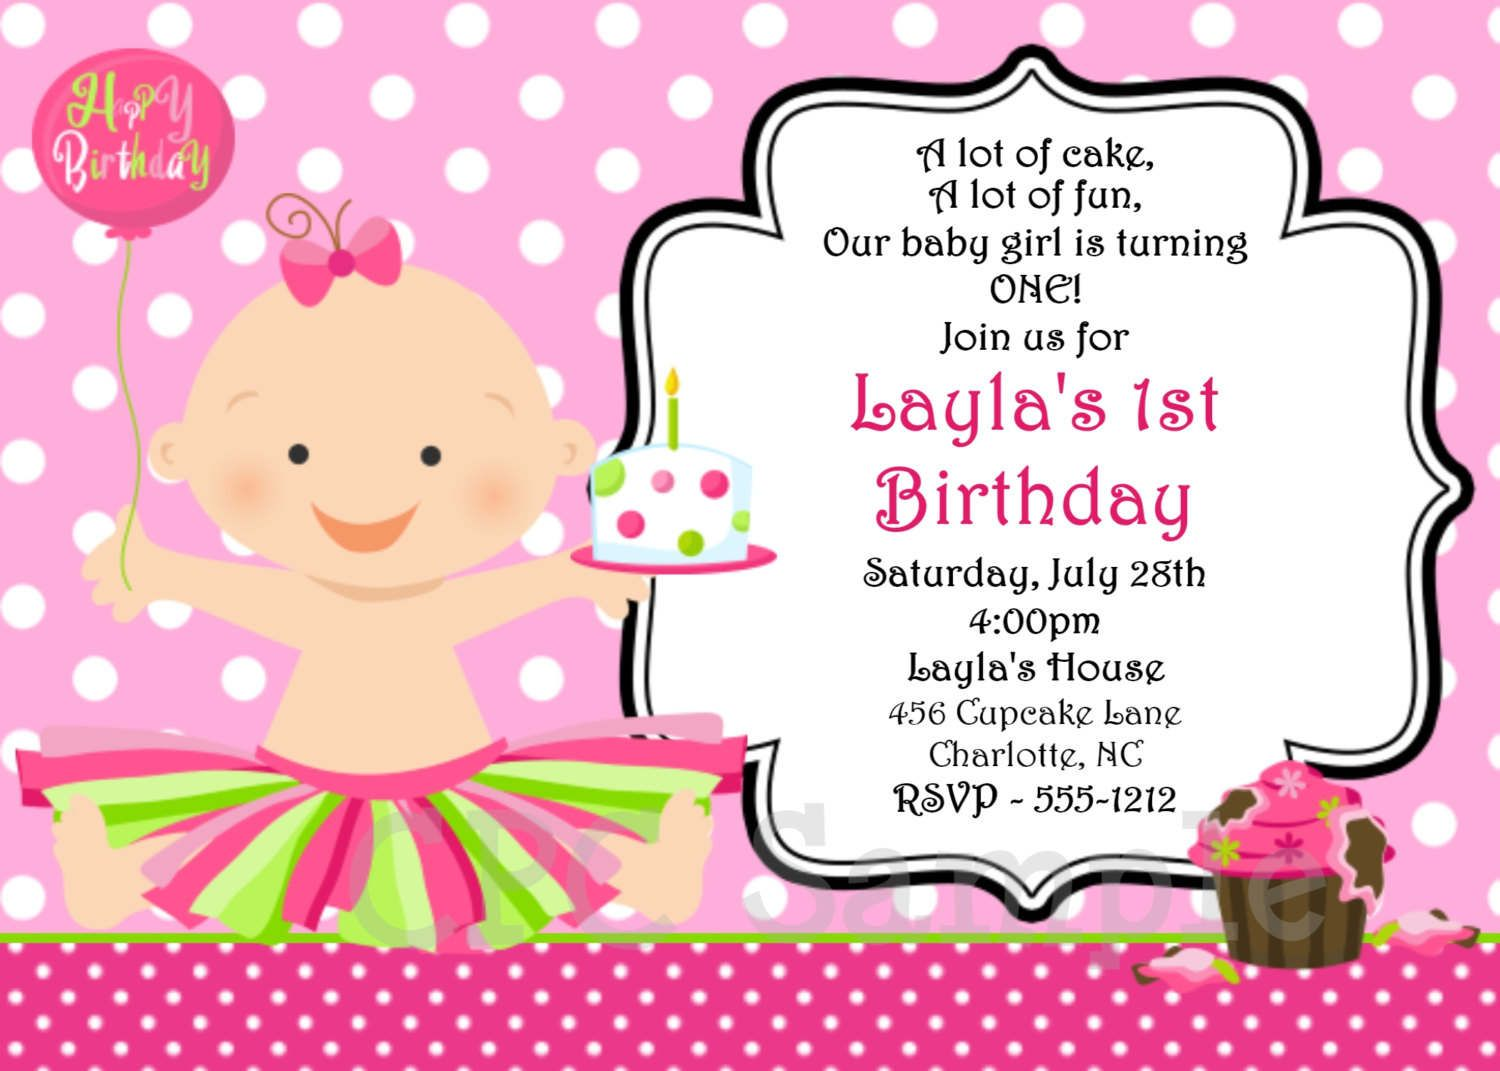 Birthday Invites Free Birthday Invitation Maker Images Downloads ...